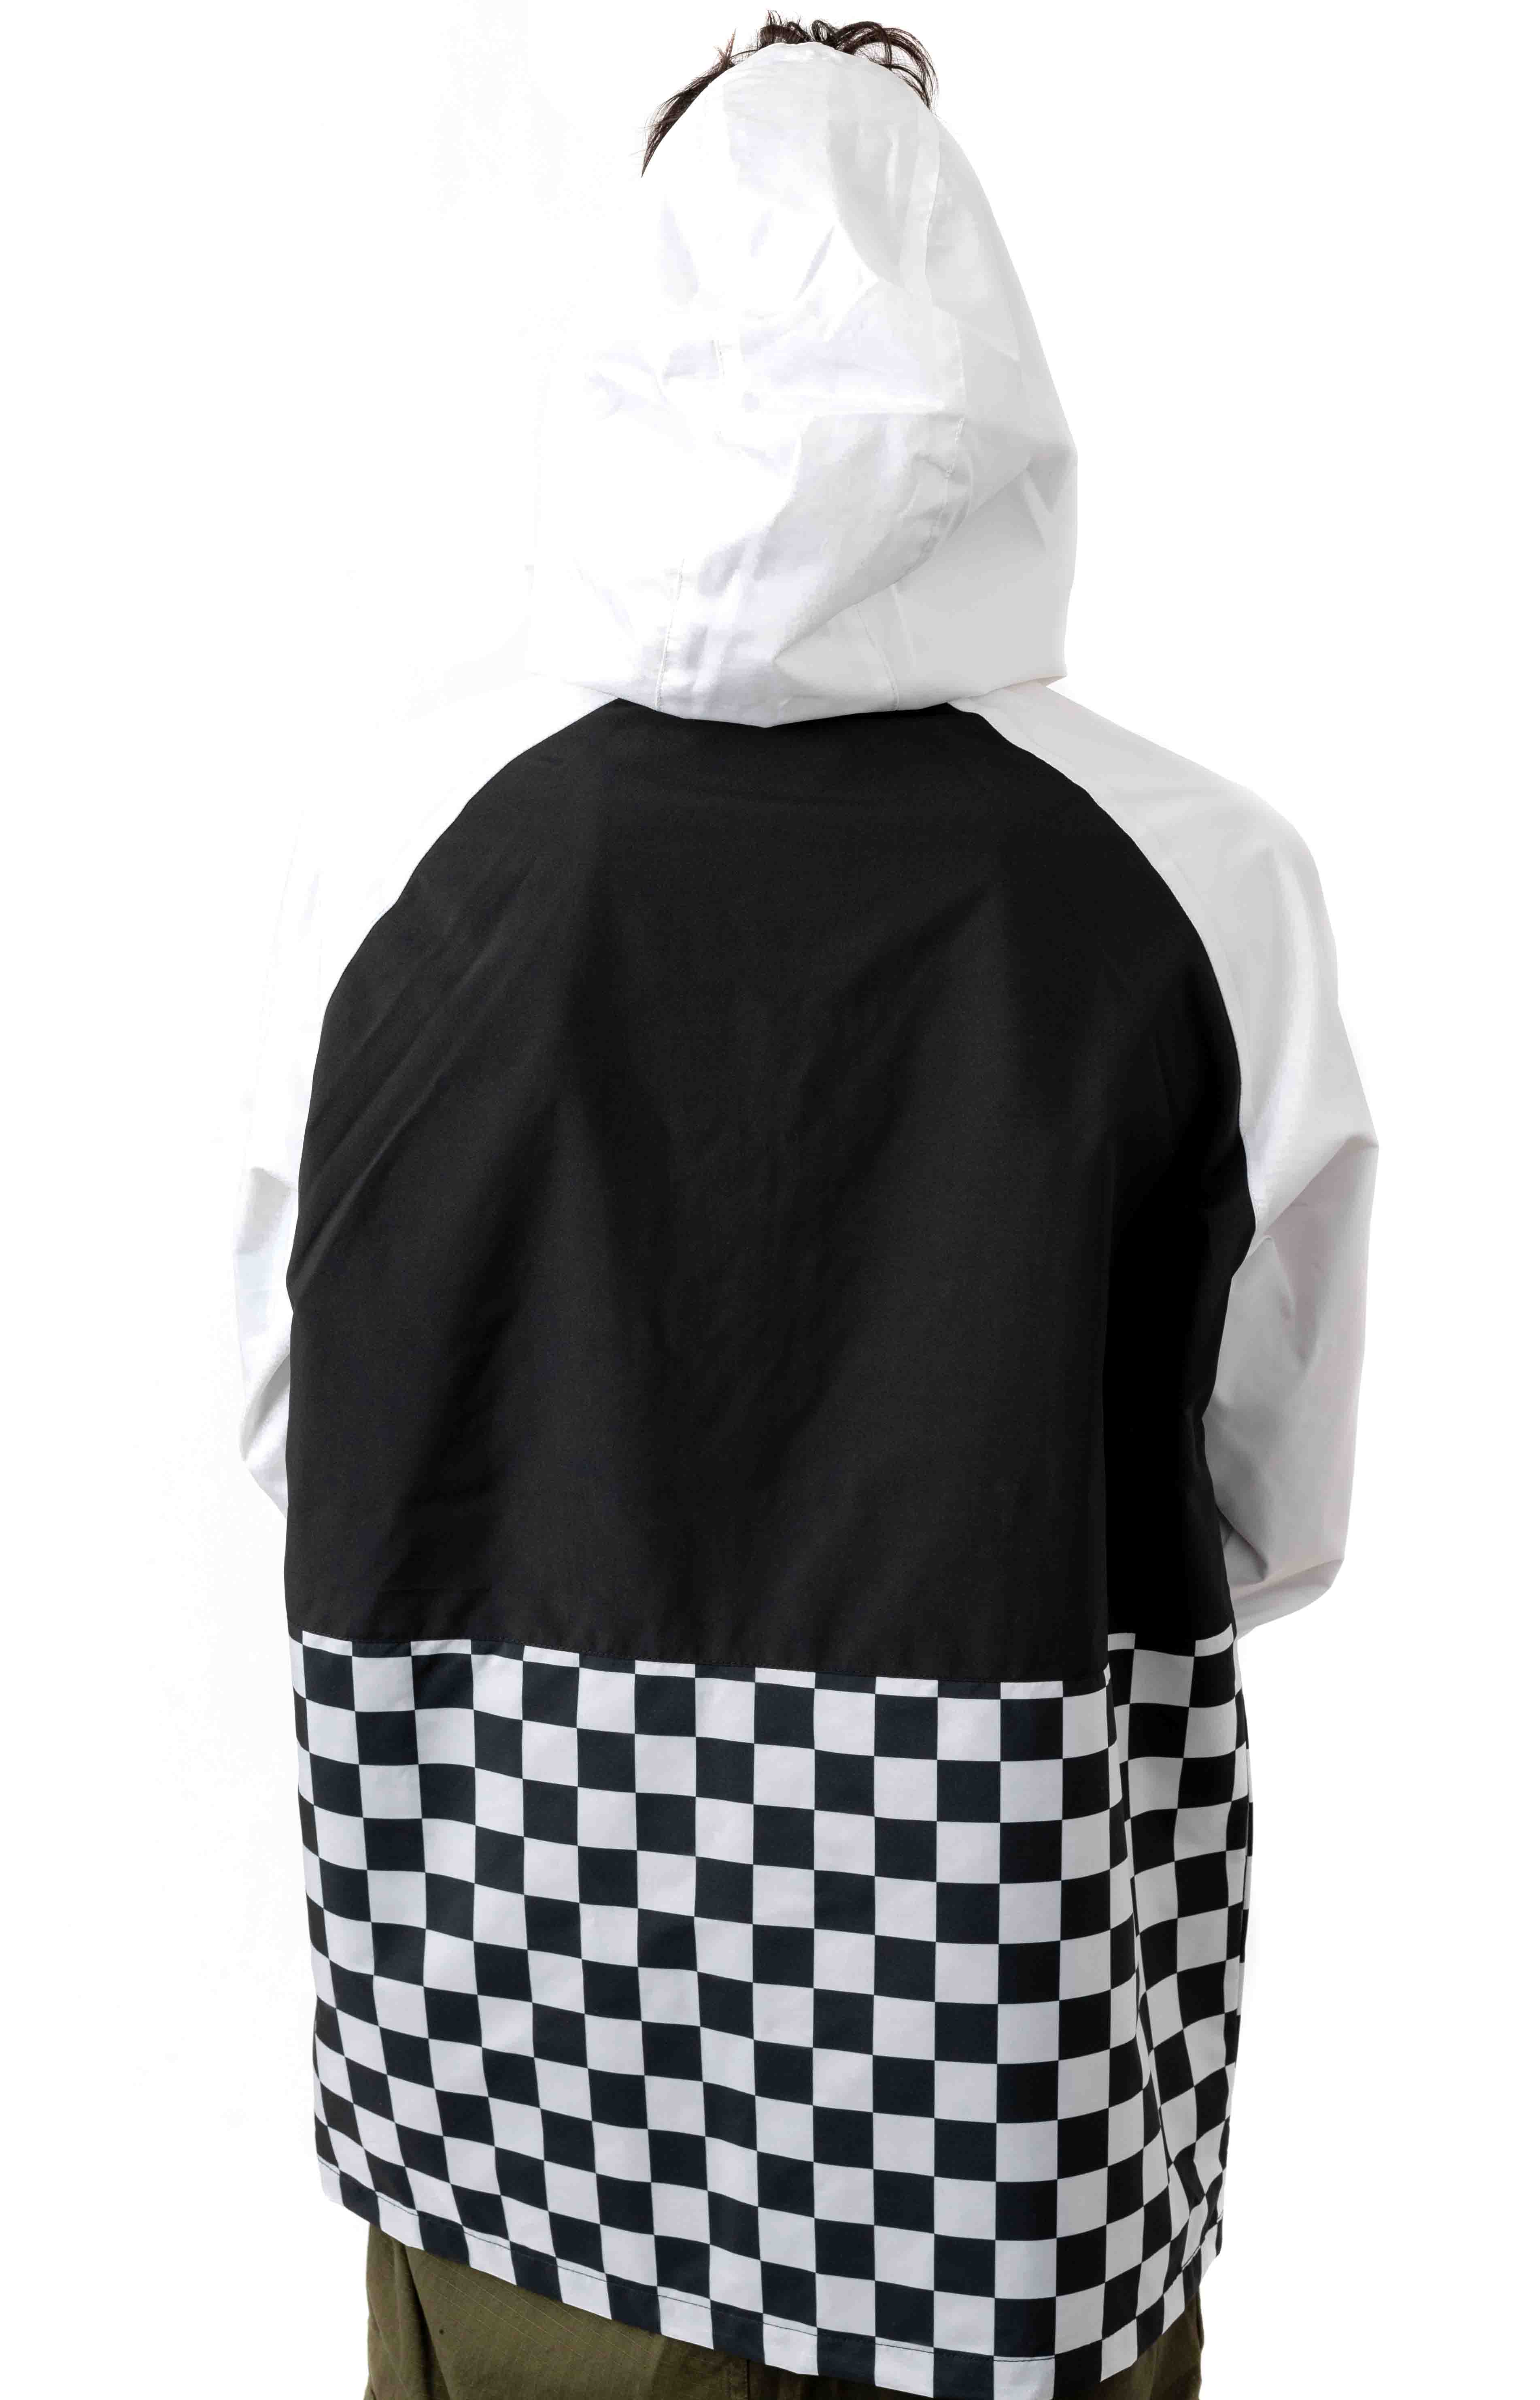 BMX Off The Wall Anorak - Black/White 4